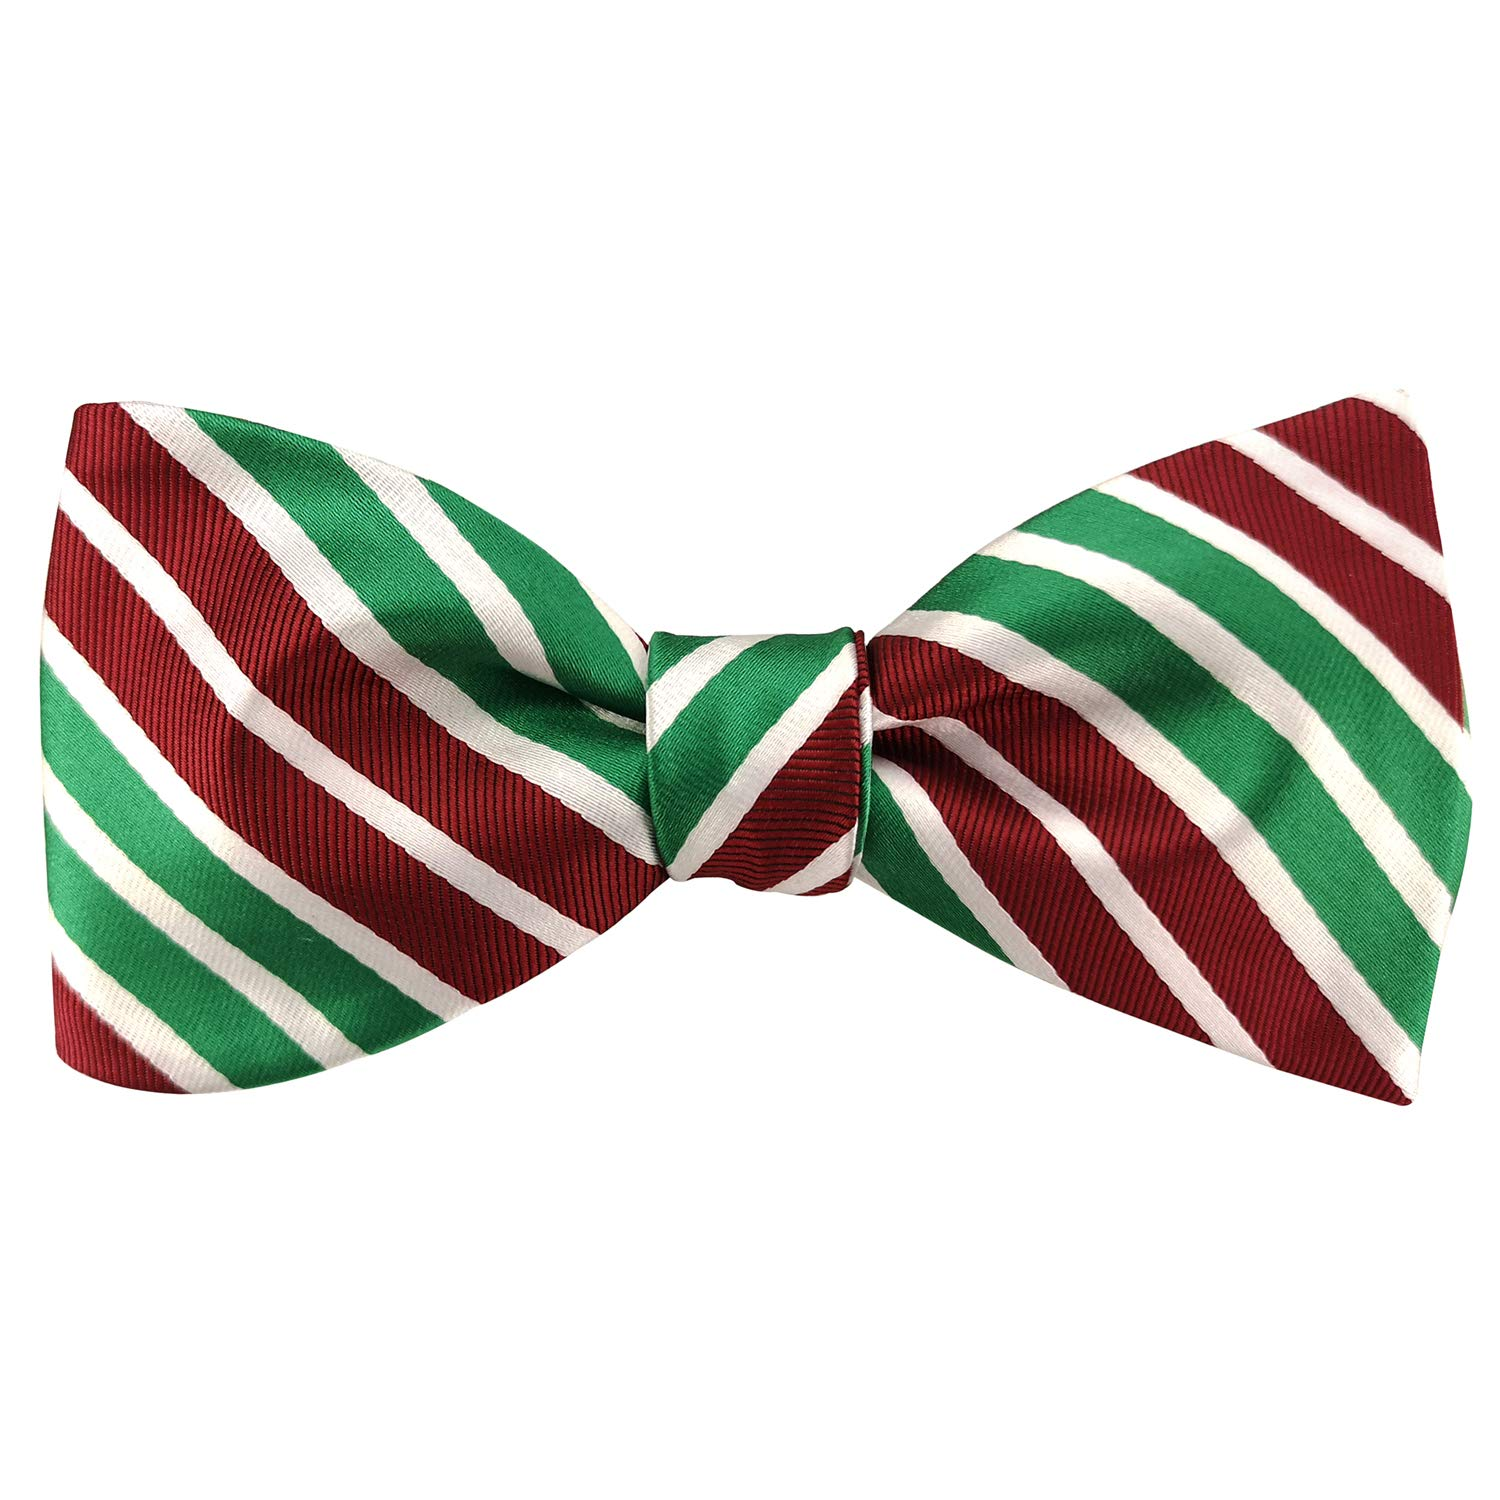 8cc707c1e3aa Clothing, Shoes & Jewelry Green Series #1 KOOELLE Christmas Bow Ties for Mens  Novelty Patern Jacquard Self Bowtie